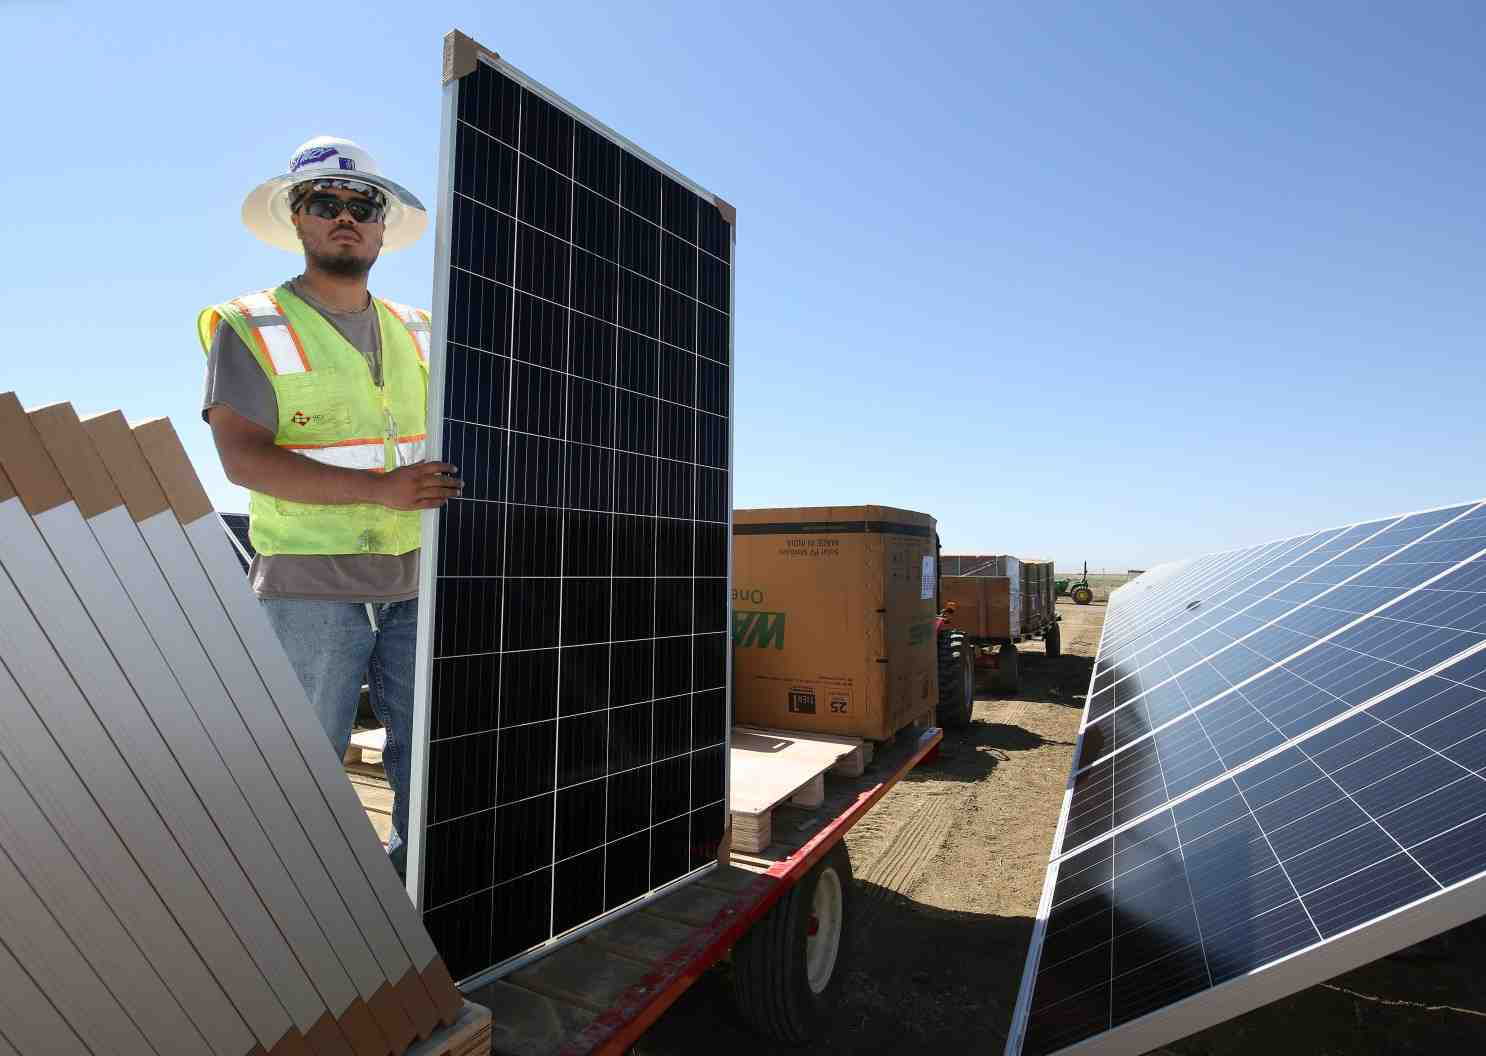 How long does it take to get solar permit in California?